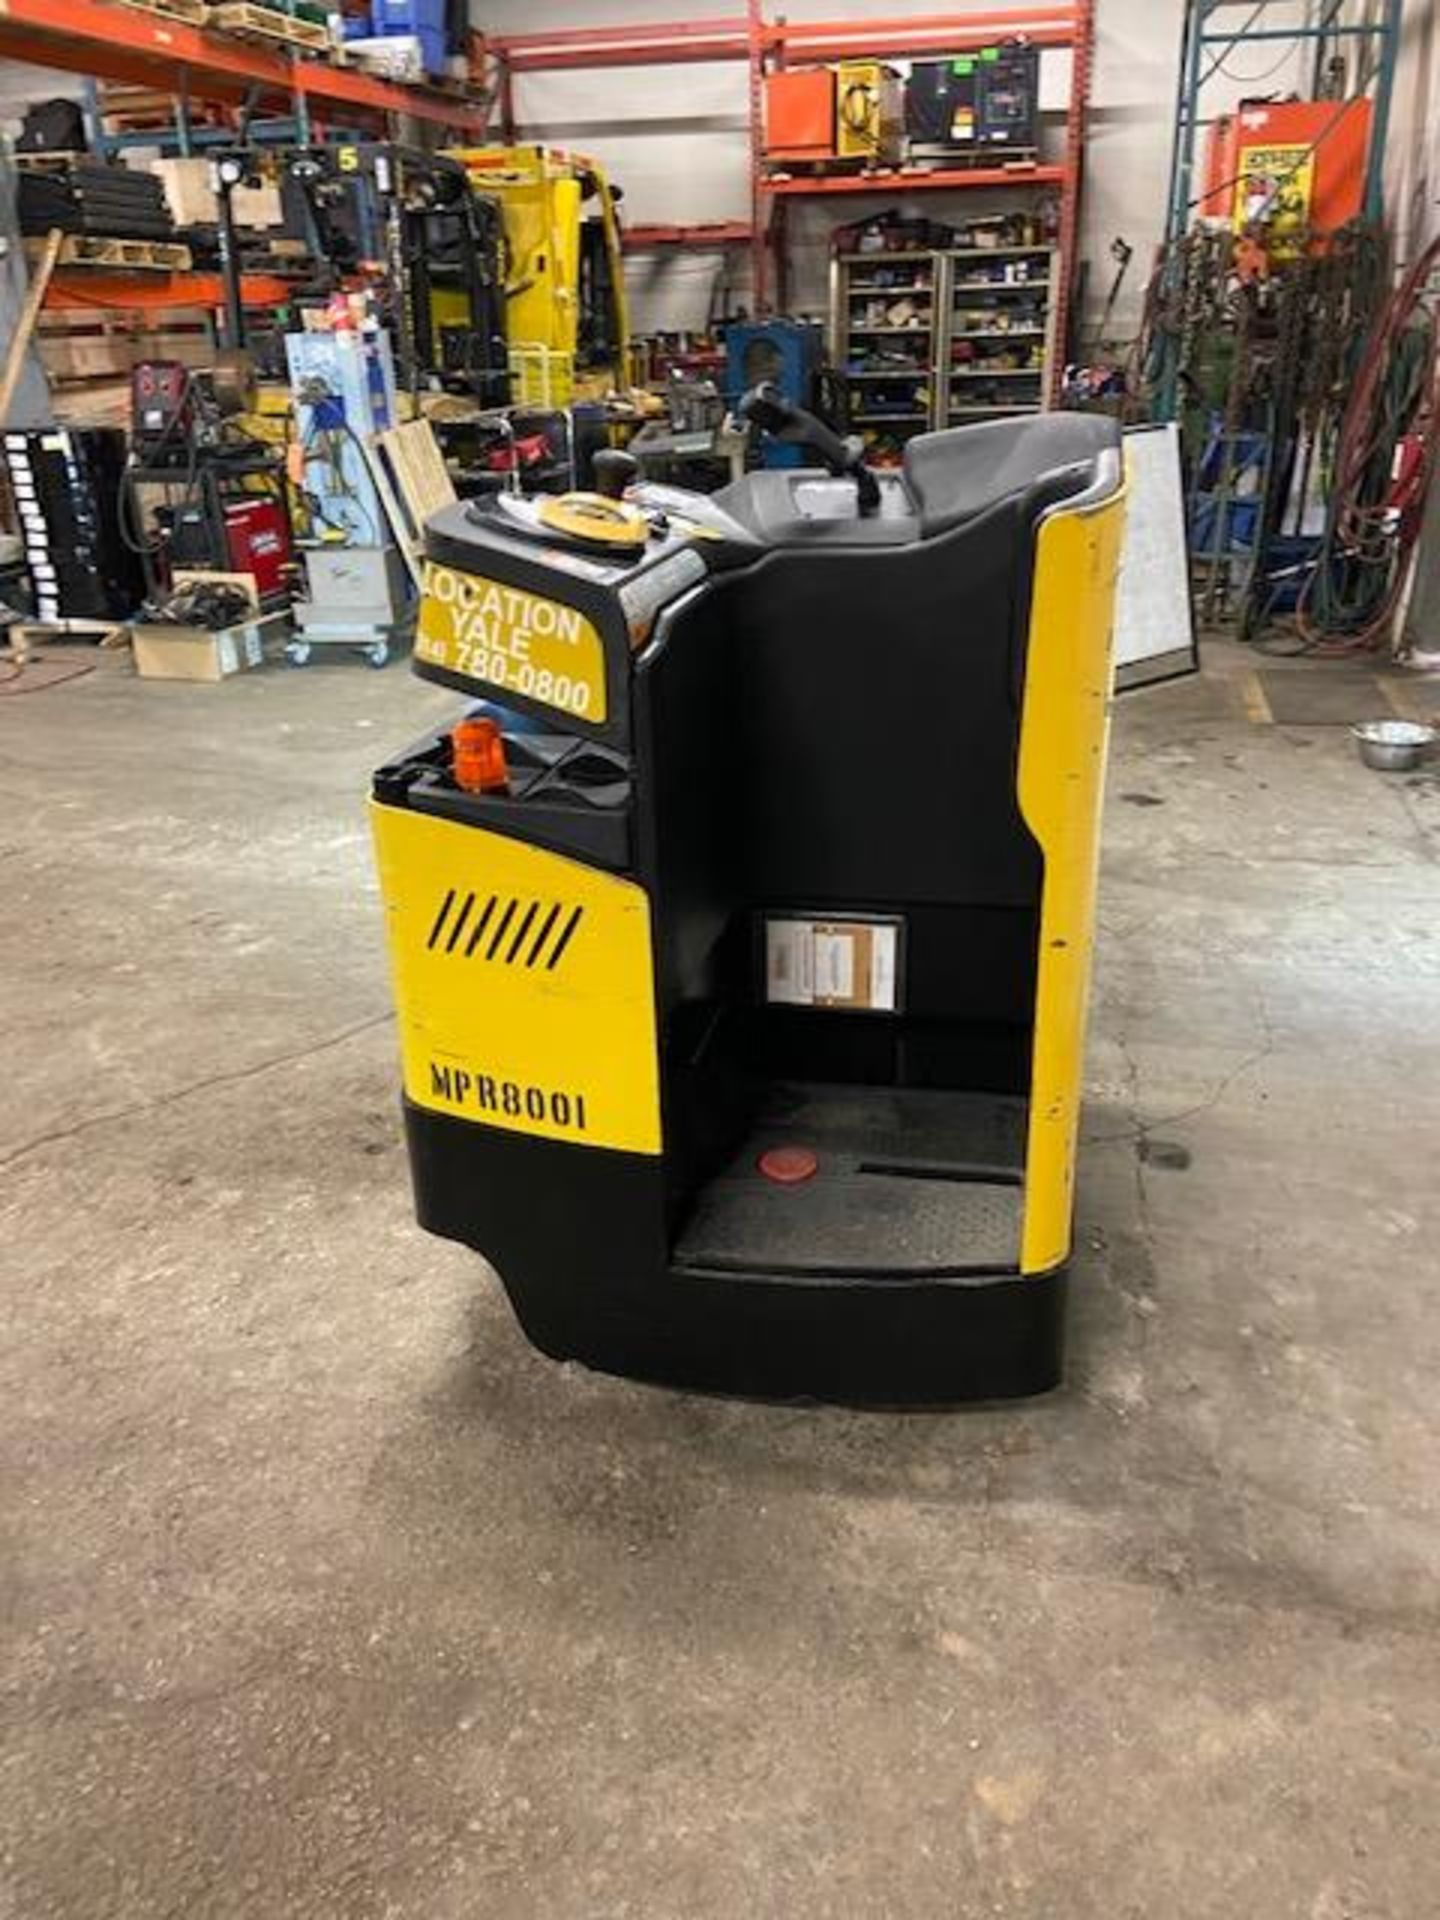 MINT 2018 Yale Electric Ride on Powered Pallet Cart Lift 8000lbs capacity with VERY LOW HOURS - - Image 4 of 4